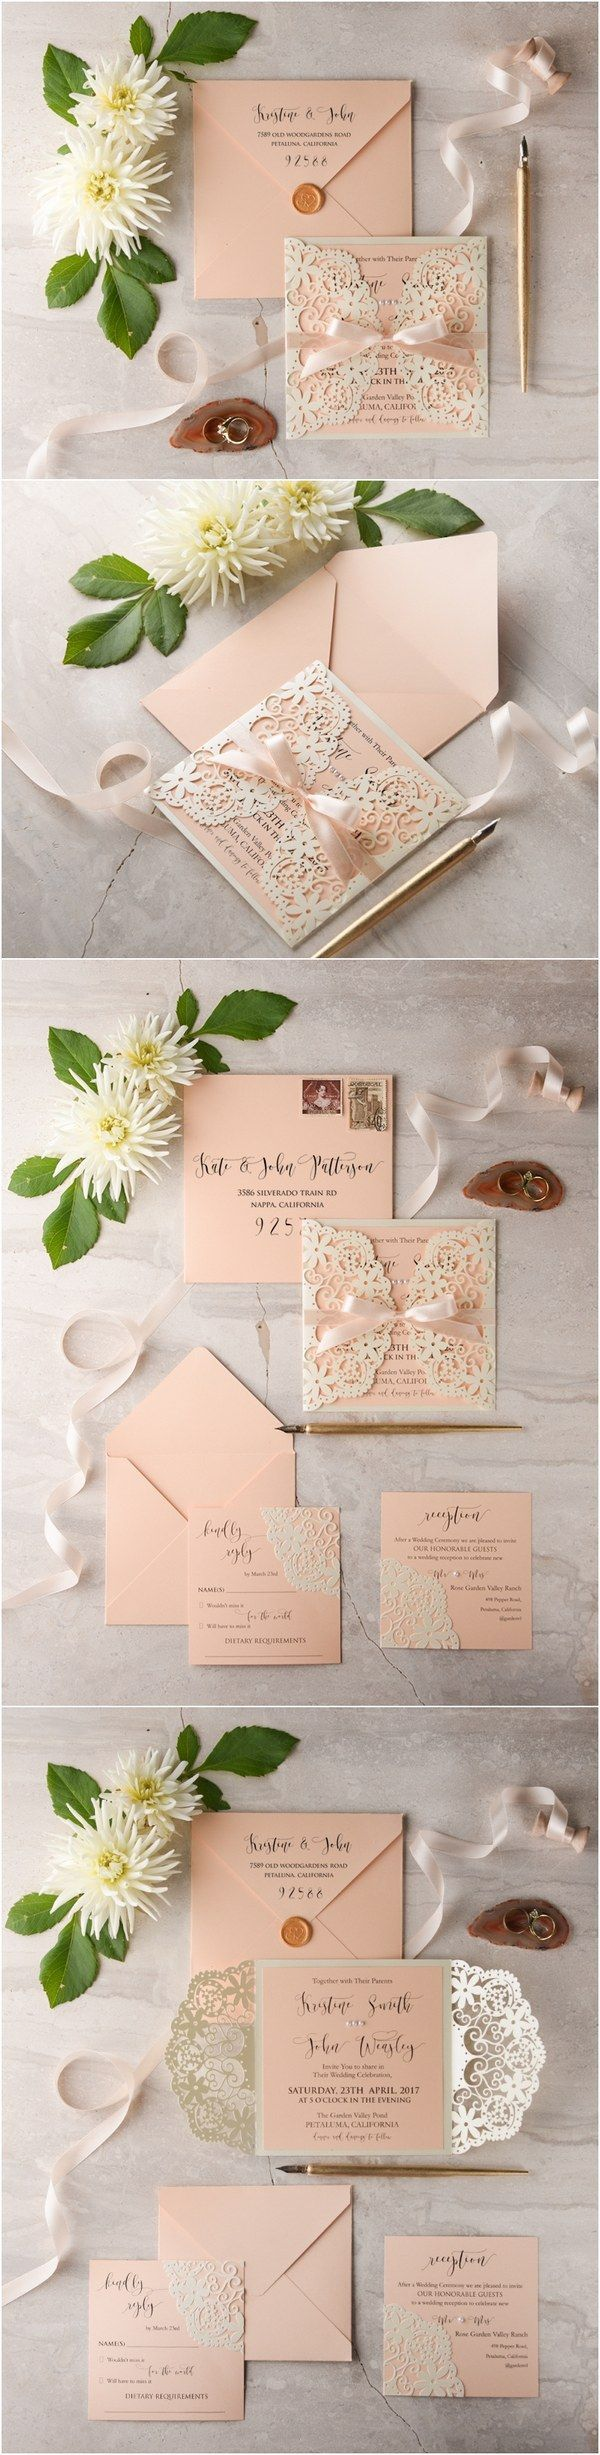 wedding card manufacturers in tamilnadu%0A Peach and Ivory laser cut wedding invitations   LuctGGz    http   www deerpearlflowers